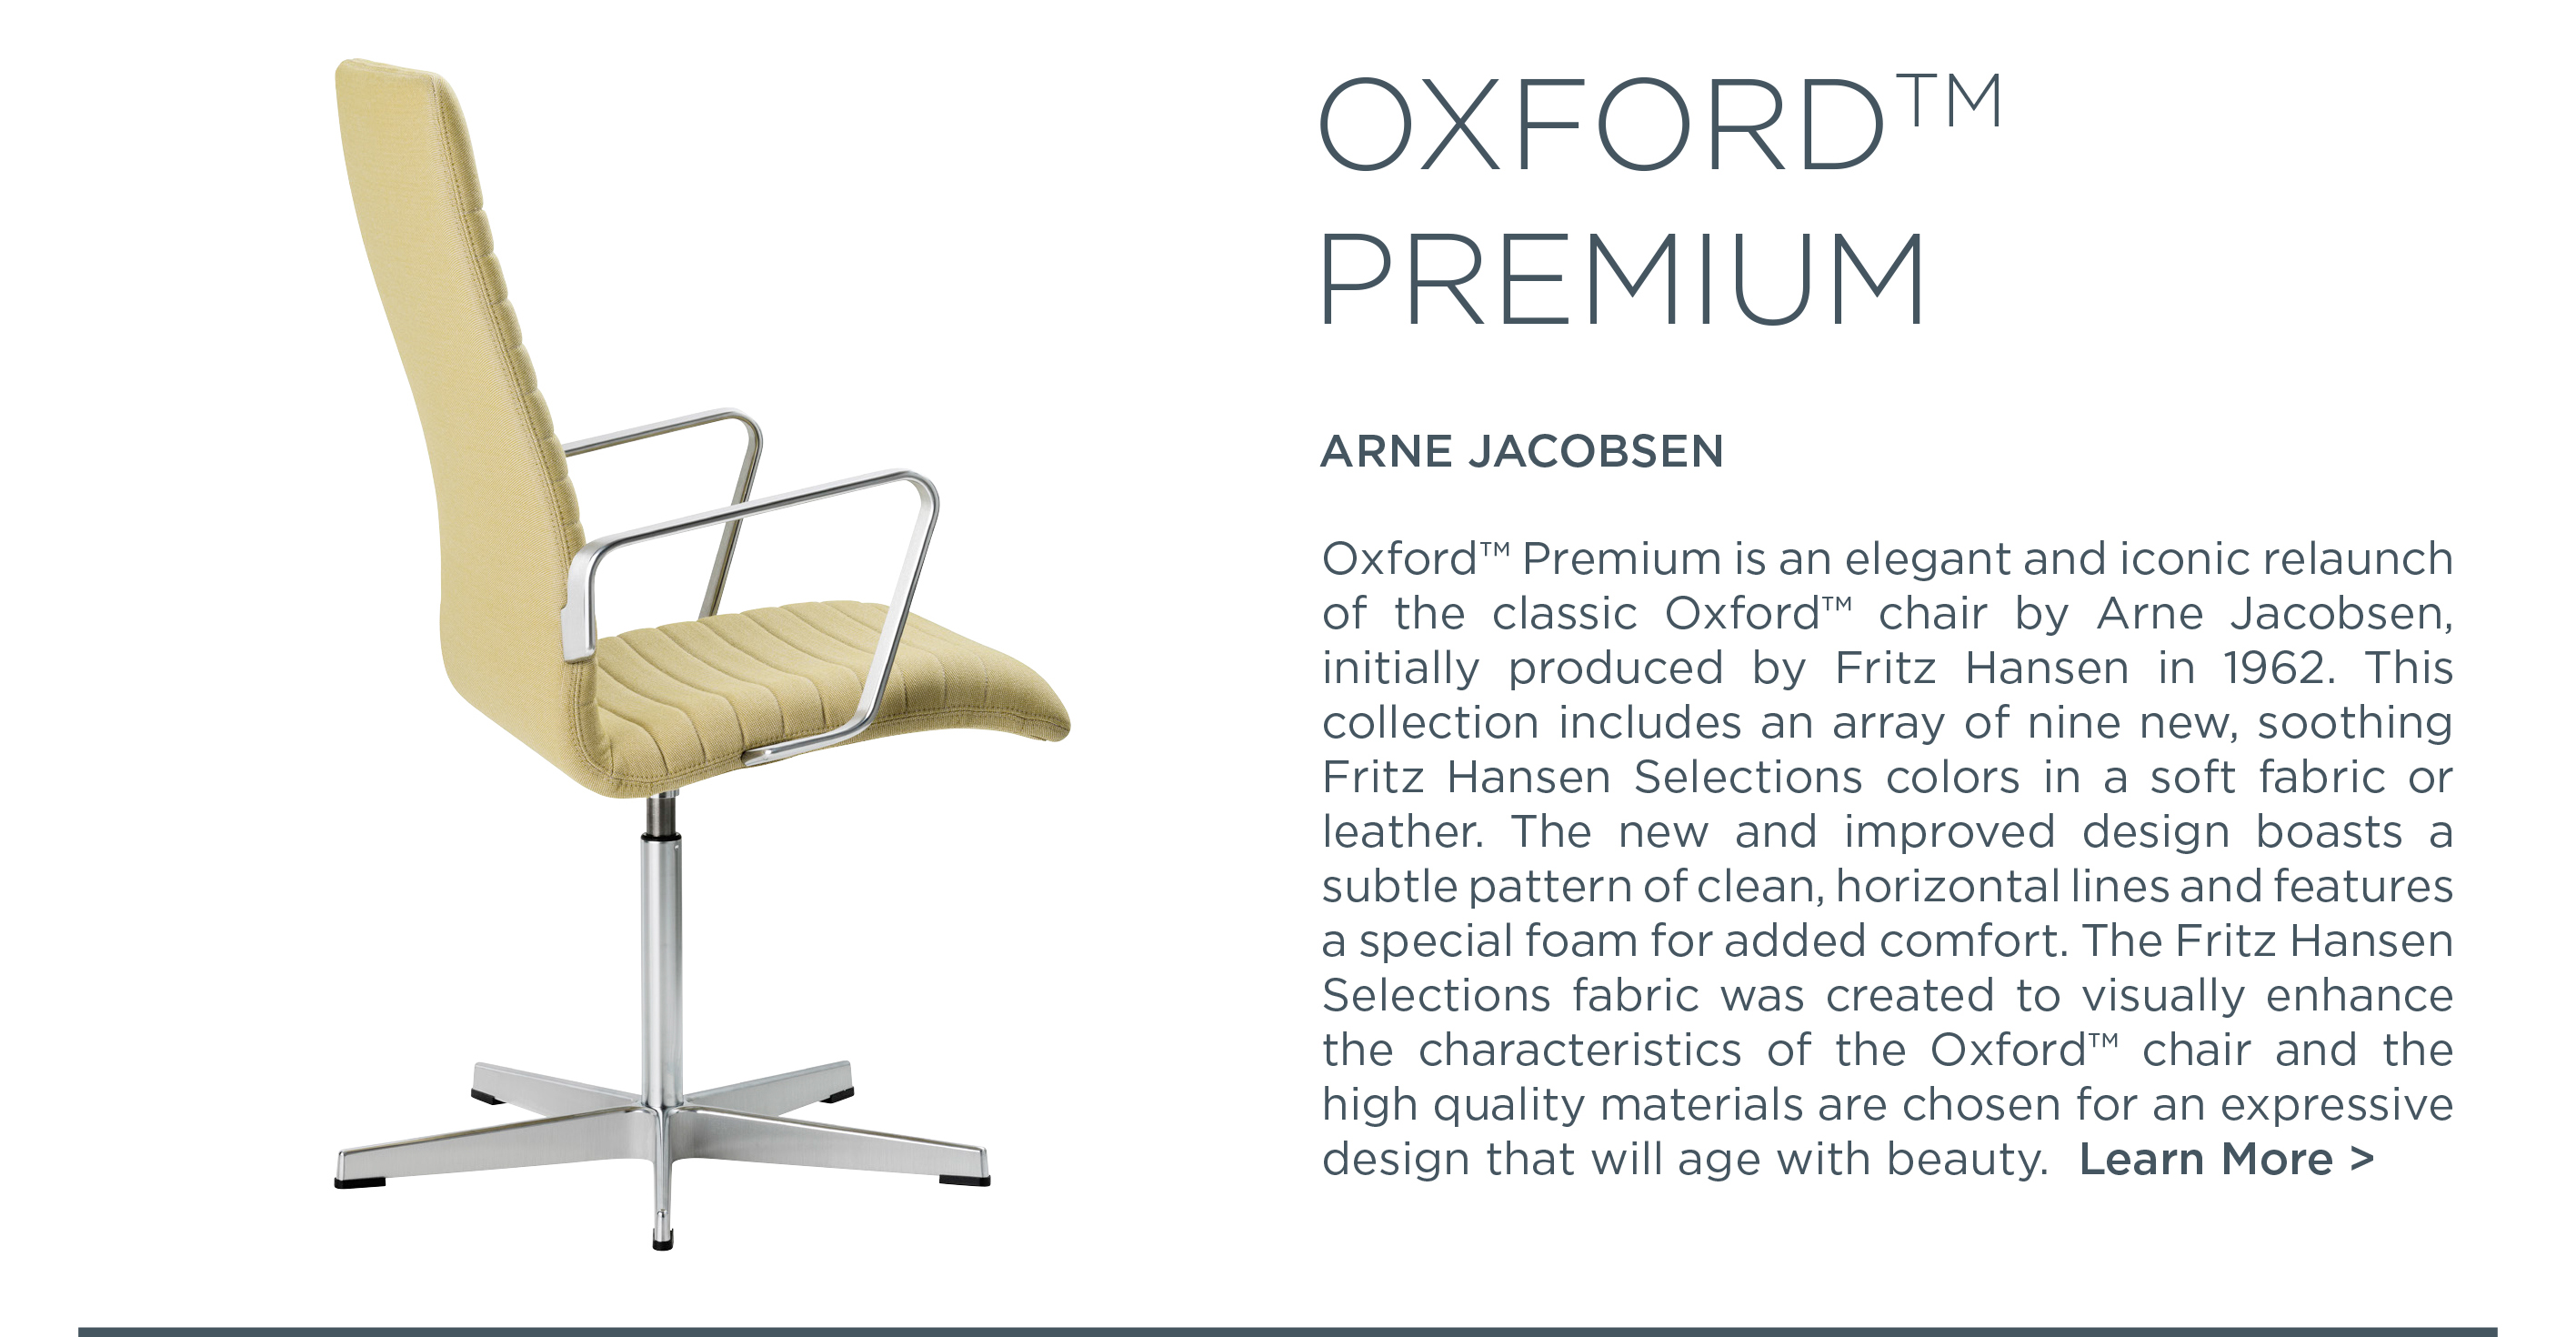 Oxford Premium arne jacobsen fritz hansen suite ny suite new york